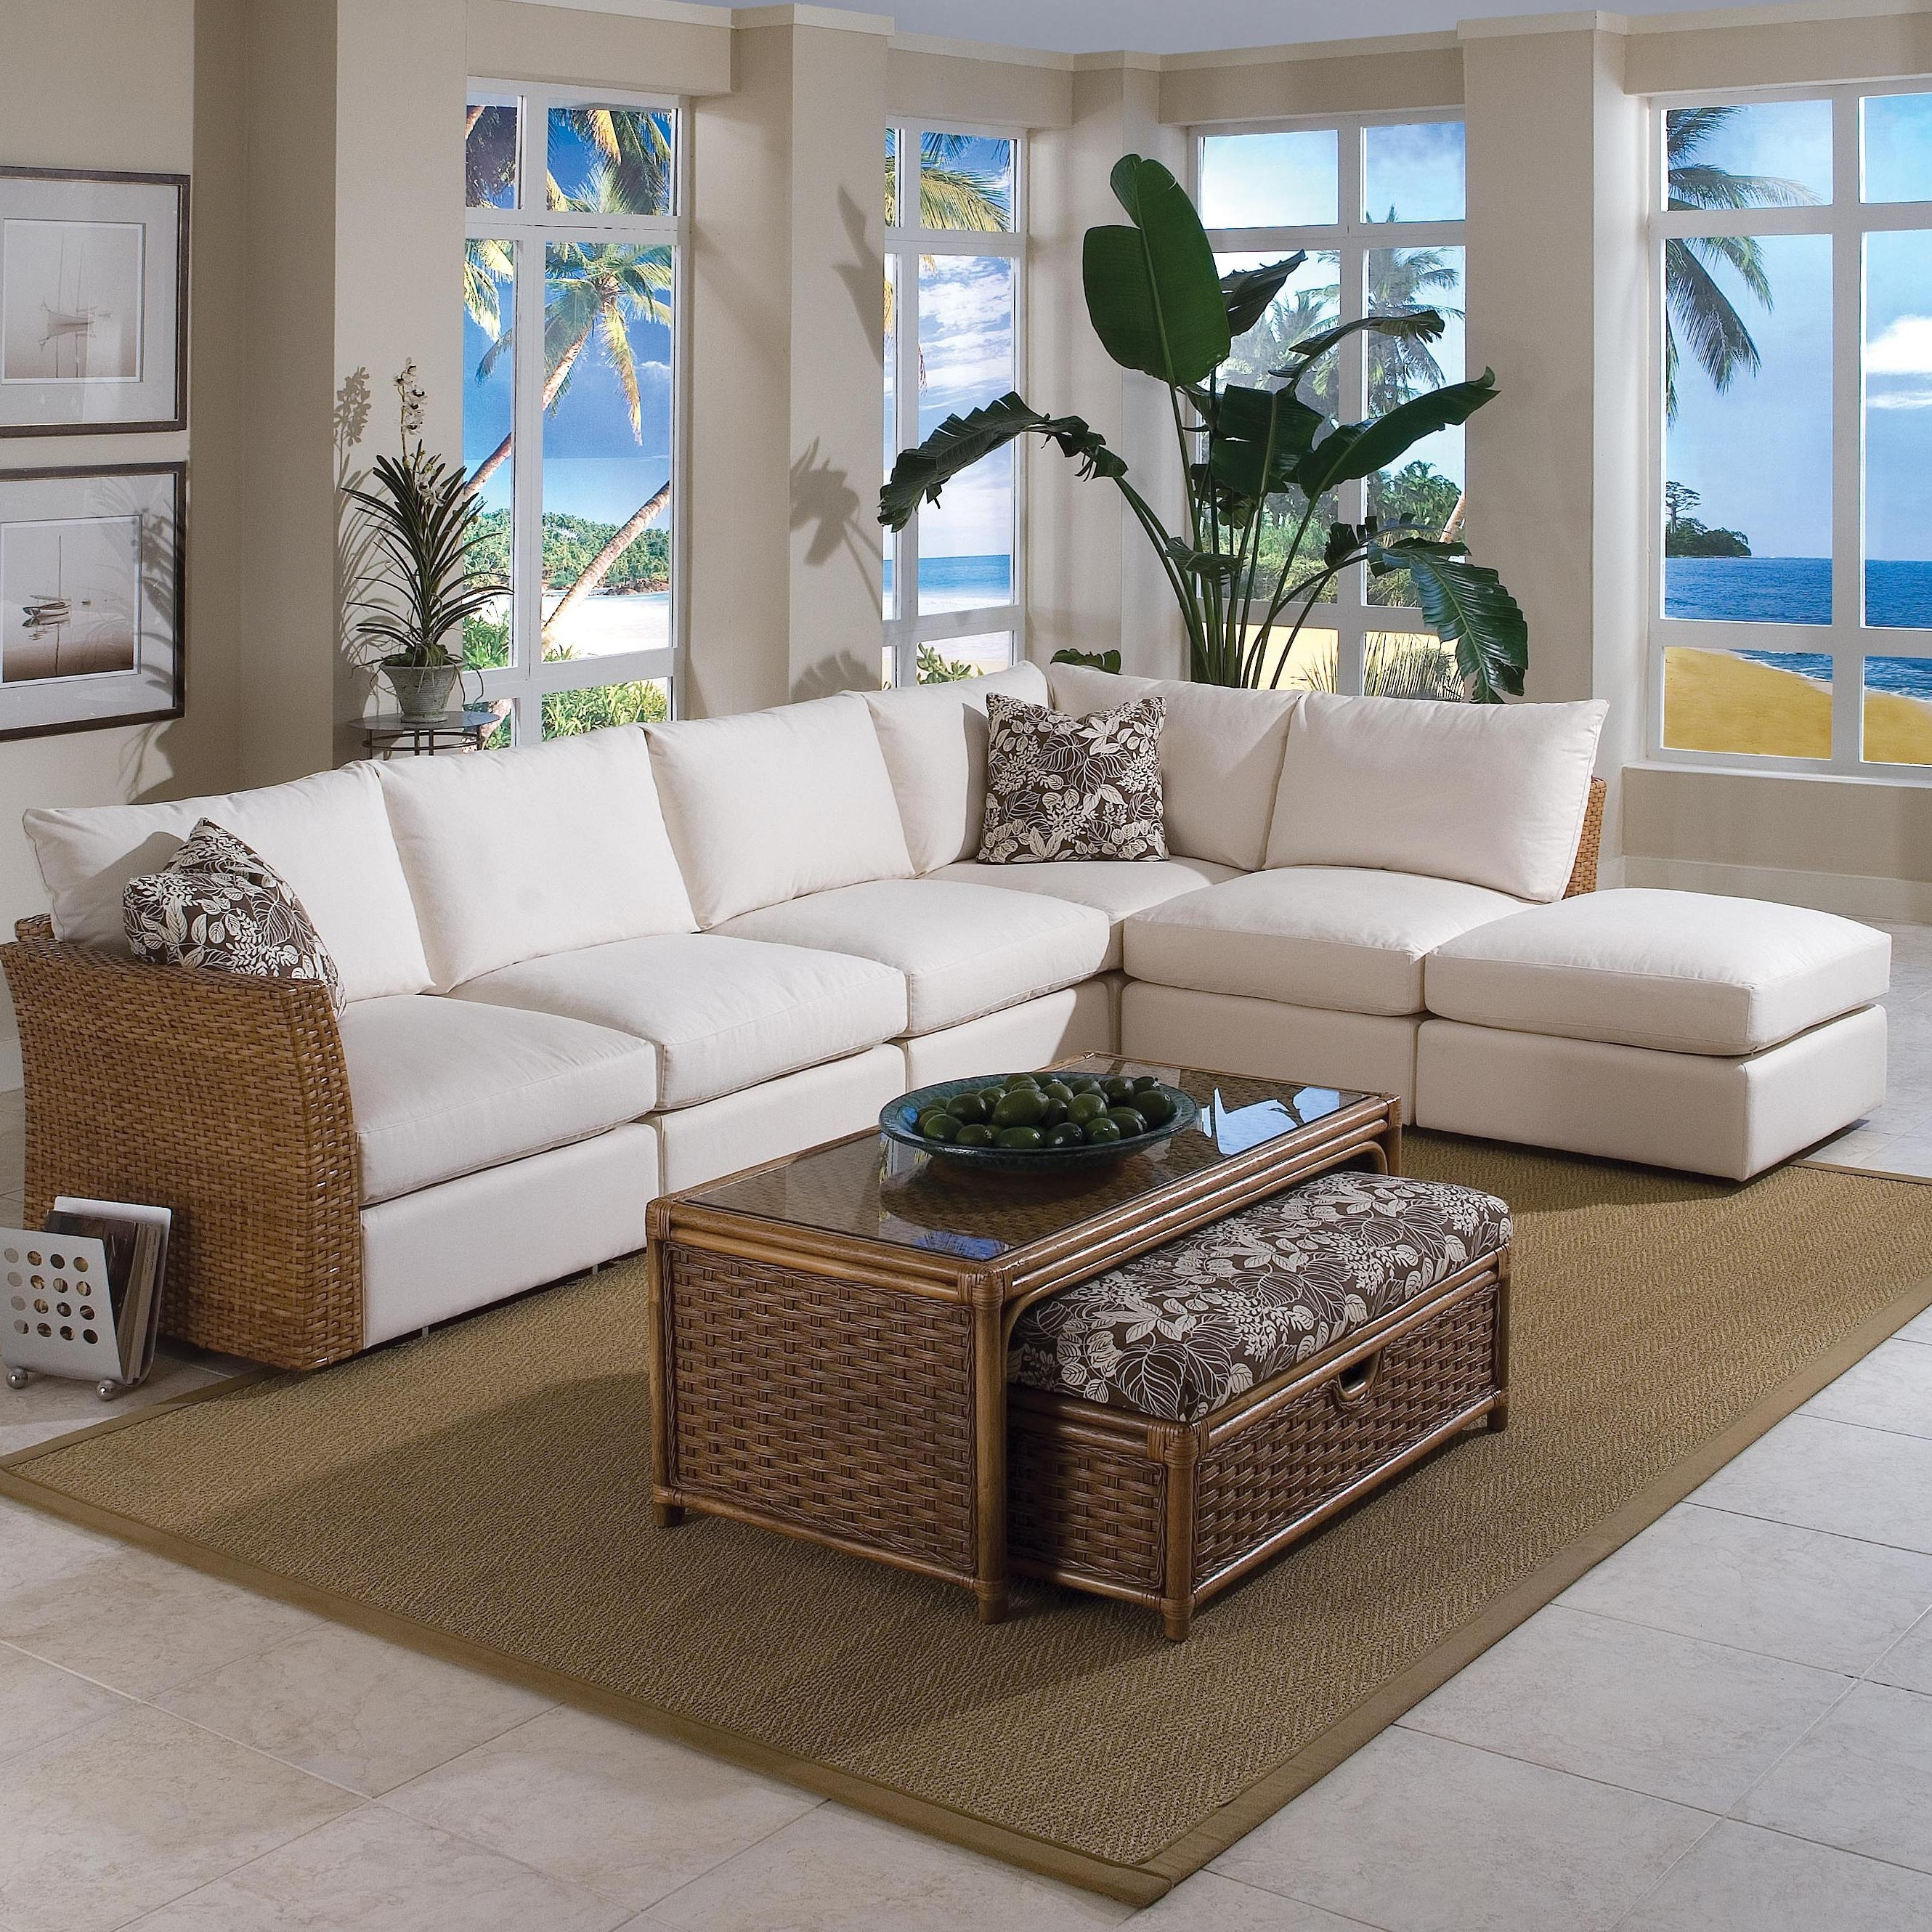 Braxton Culler Grand Water Point Tropical Sectional Sofa With Two Pertaining To Most Current Greenville Nc Sectional Sofas (View 7 of 15)